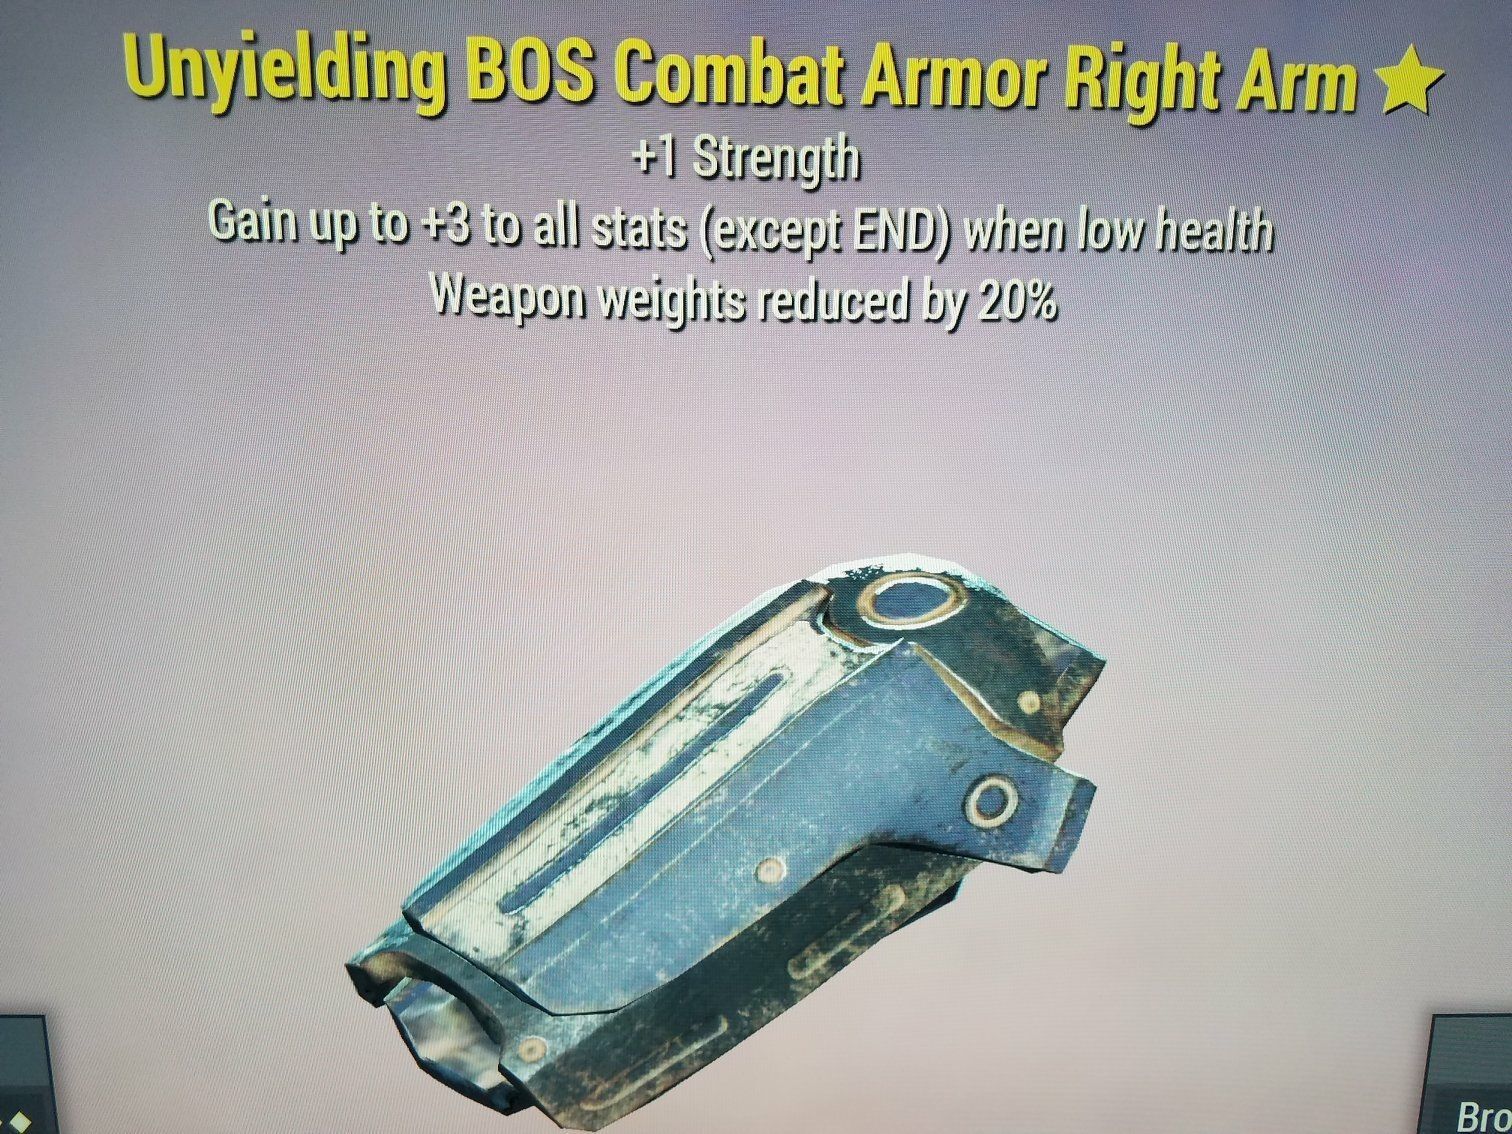 WW Reduction Unyielding BOS Combat Armor Right Arm